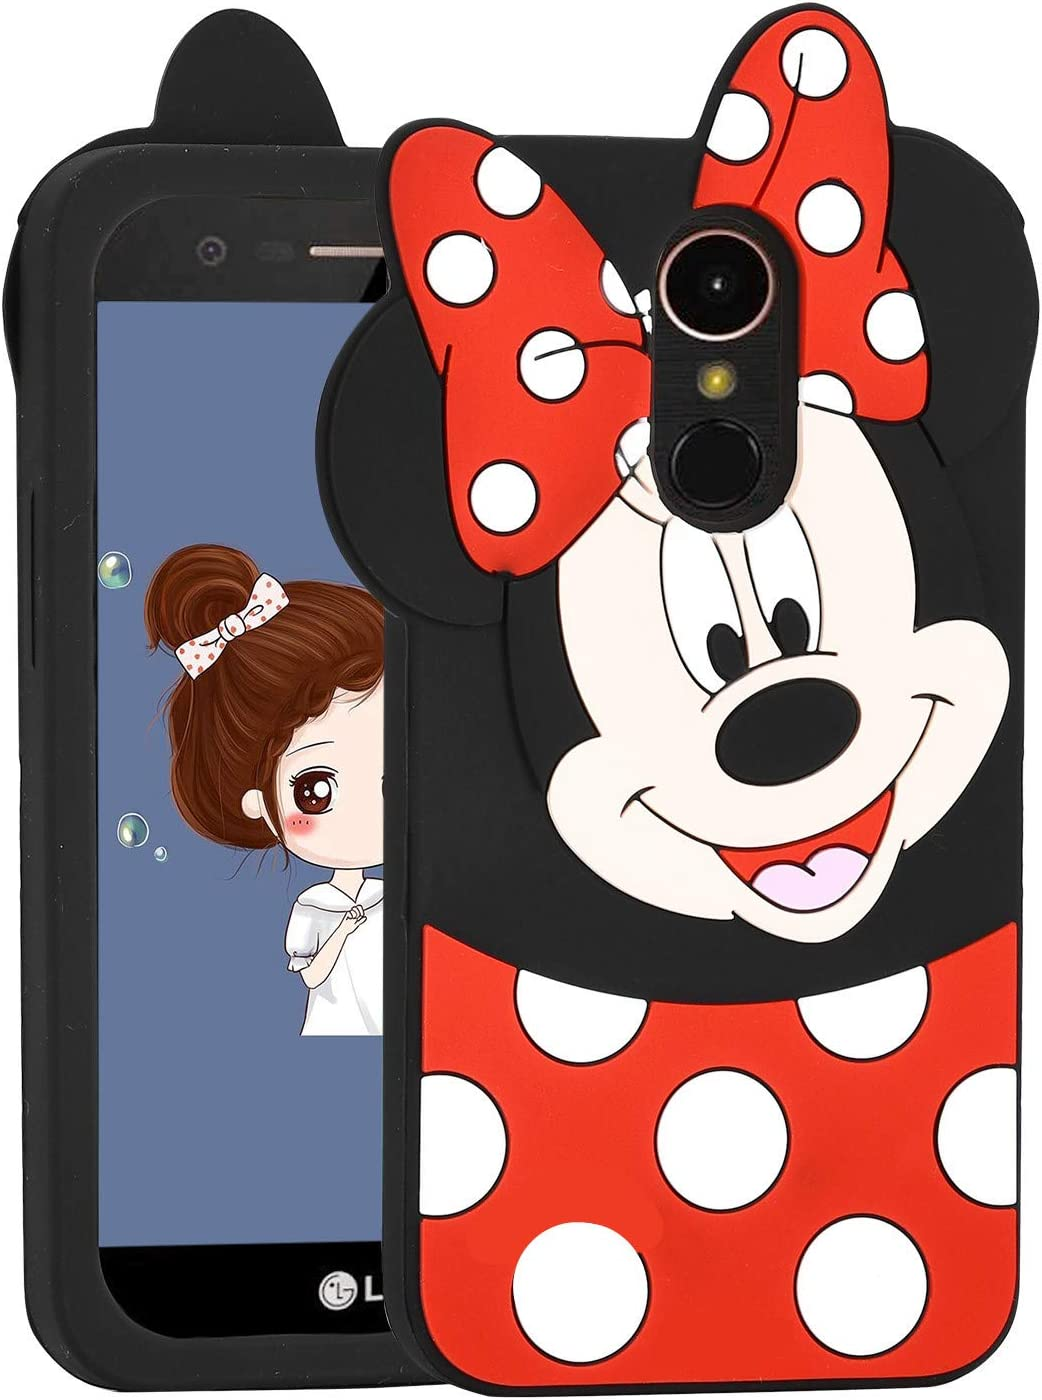 Allsky Case for LG Stylo 4 Plus(Q710) /LG Q Stylus,Cartoon Soft Silicone Cute 3D Fun Cool Cover,Kawaii Unique Kids Girls Teens Animal Character Rubber Skin Shockproof Cases for LG Stylo4 Minnie Mouse